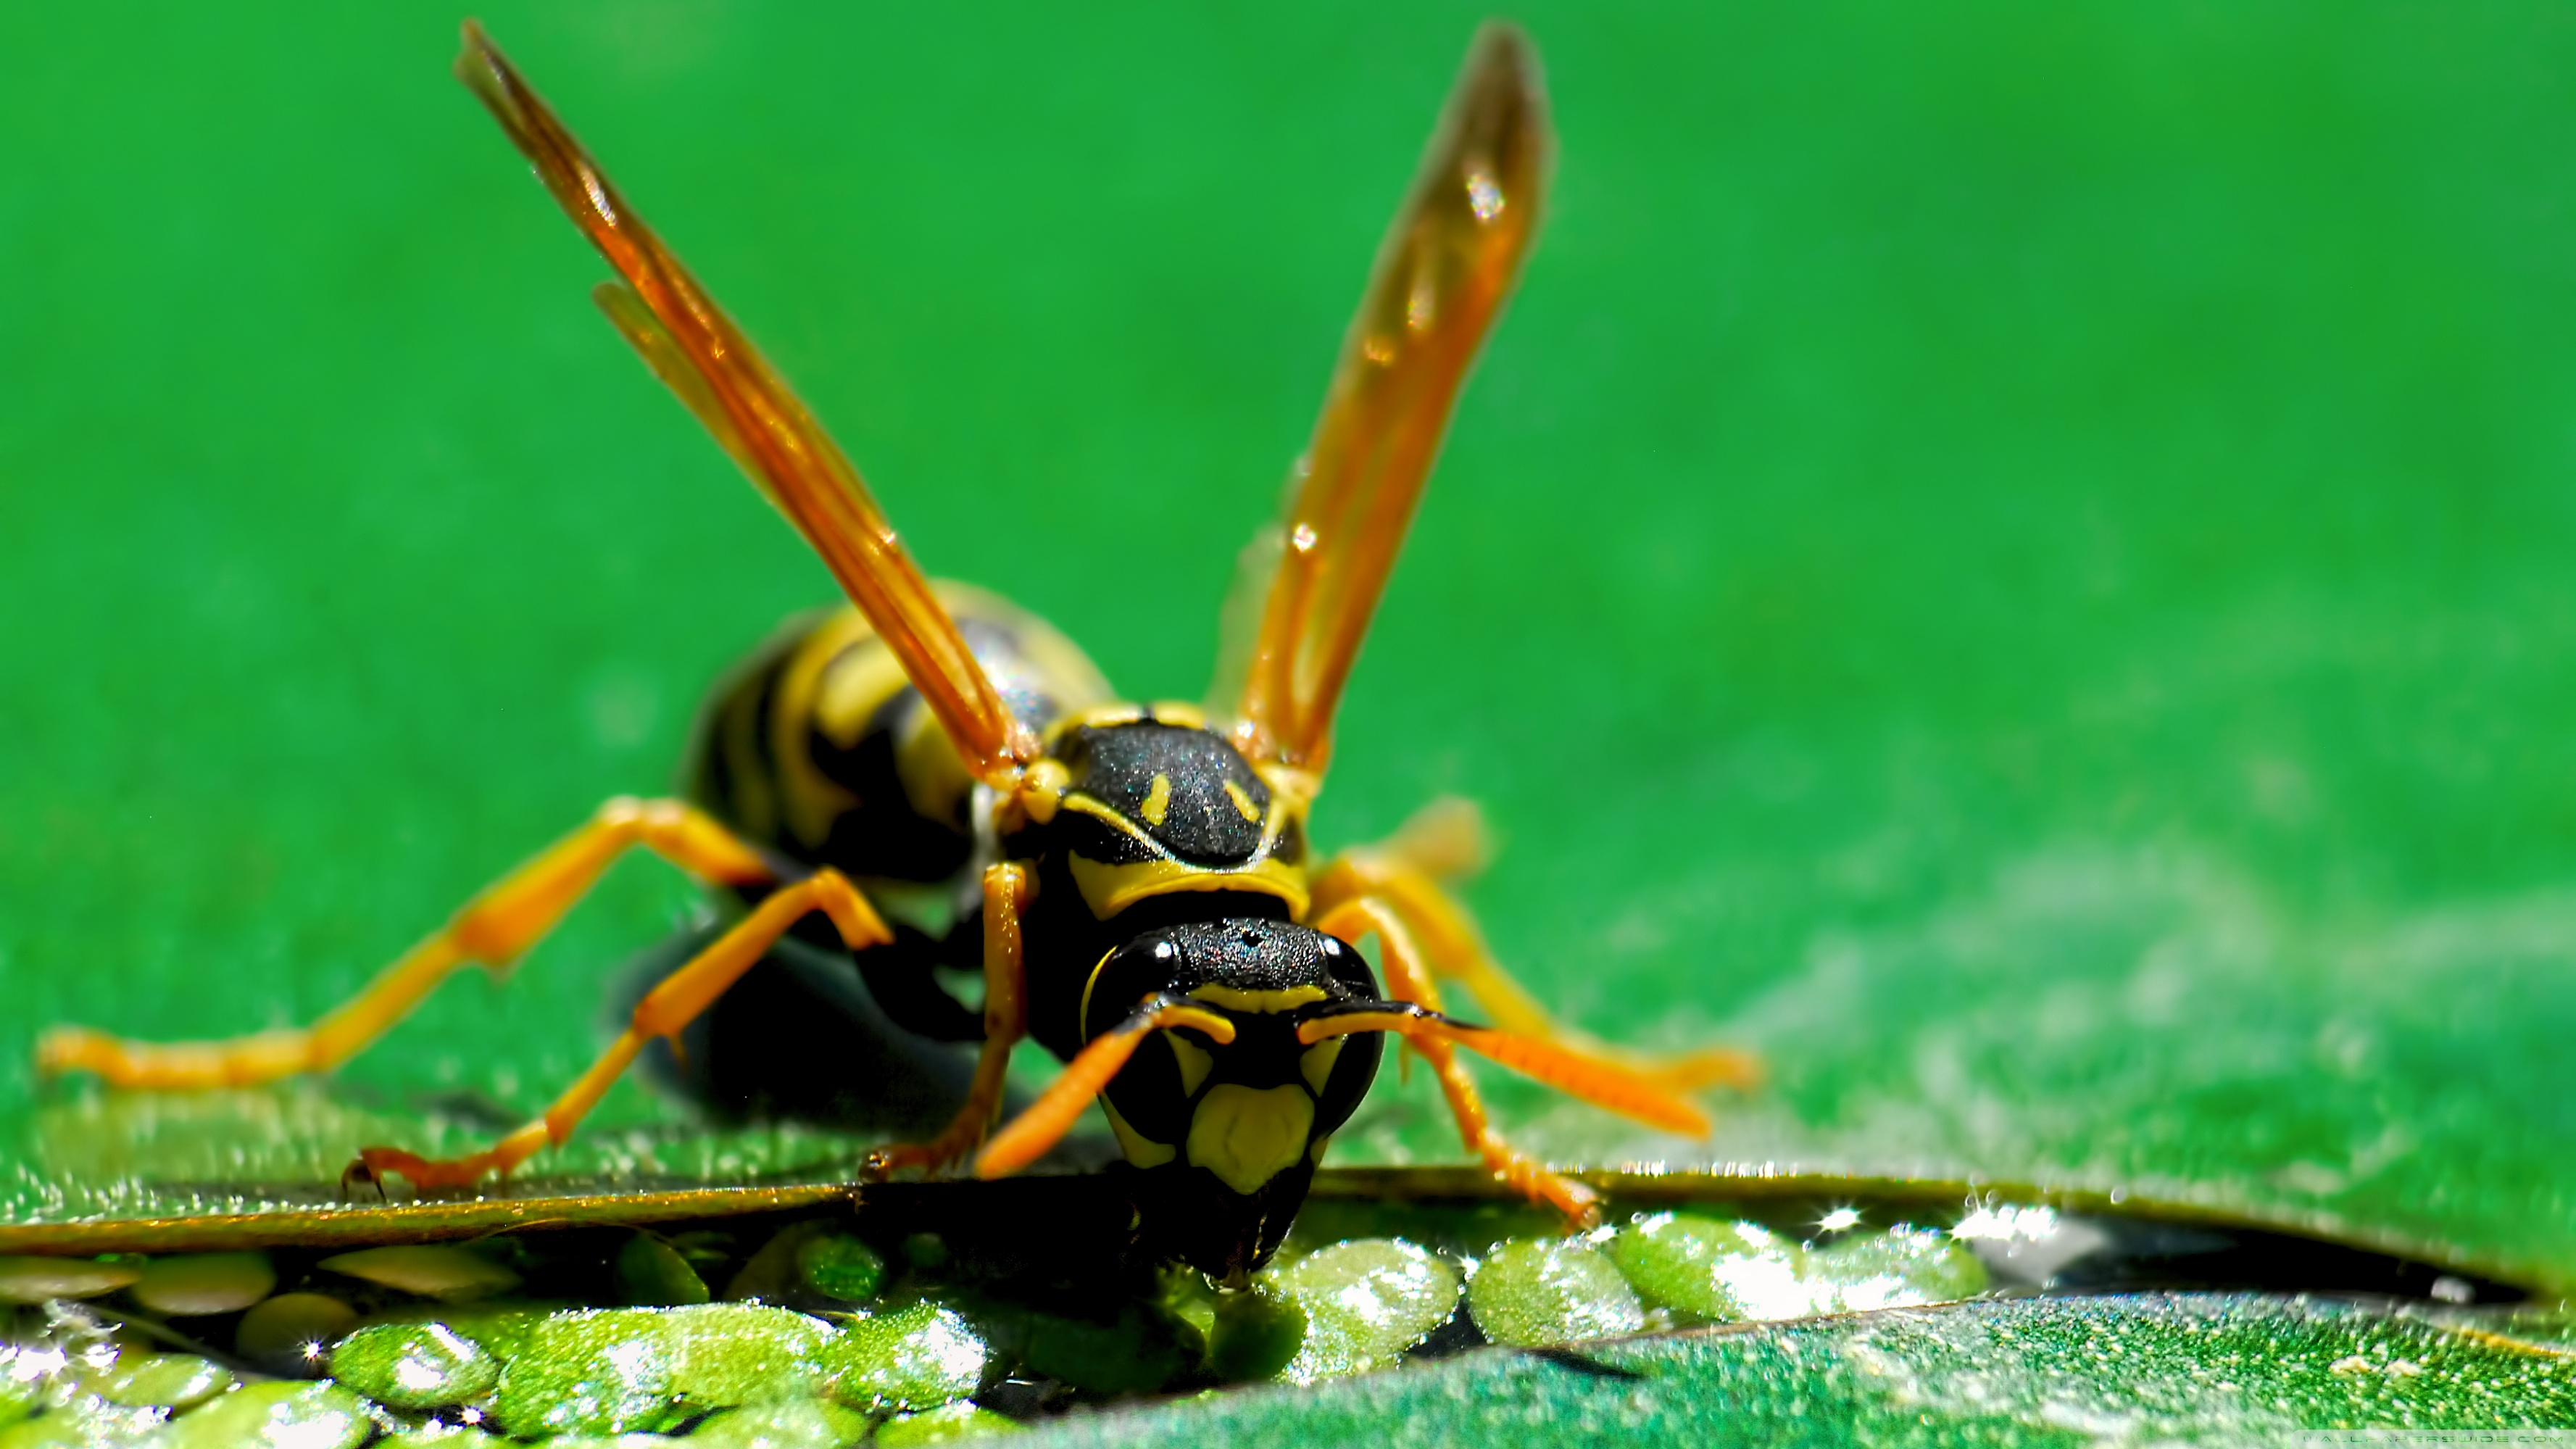 Wasp Ultra HD Desktop Backgrounds Wallpapers for 4K UHD TV